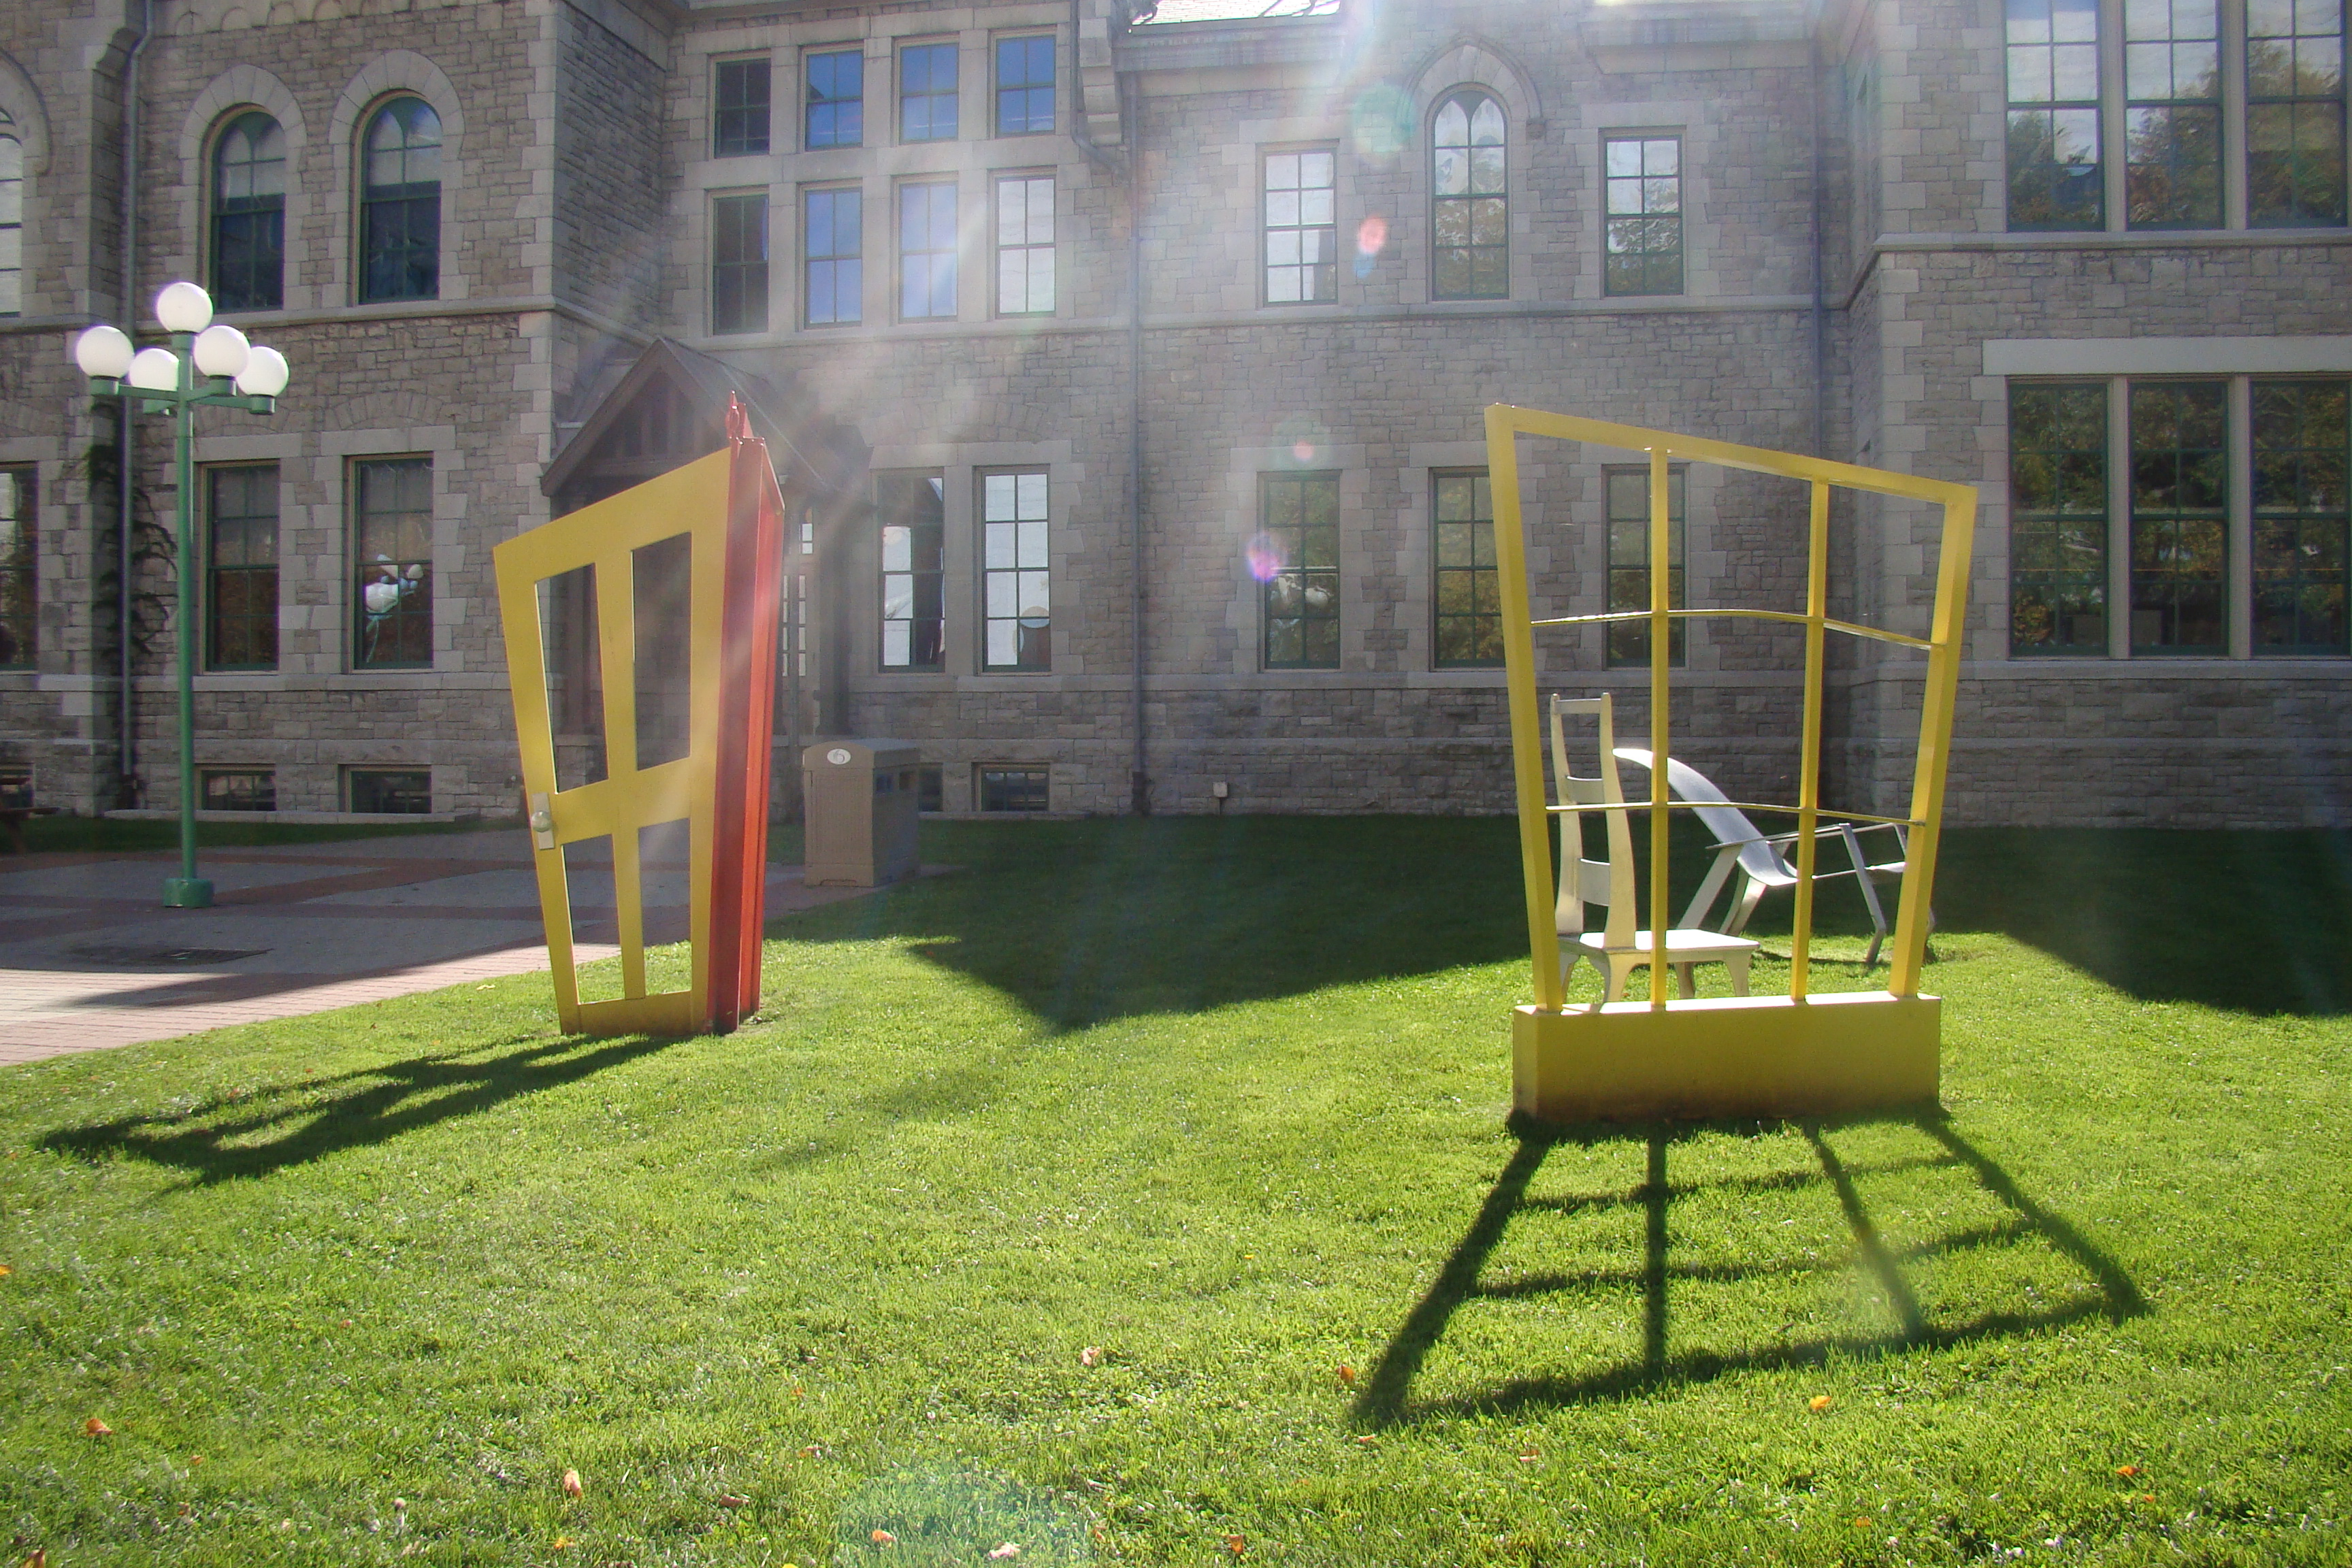 Surprising Art As Playground Playgroundology Page 2 Largest Home Design Picture Inspirations Pitcheantrous